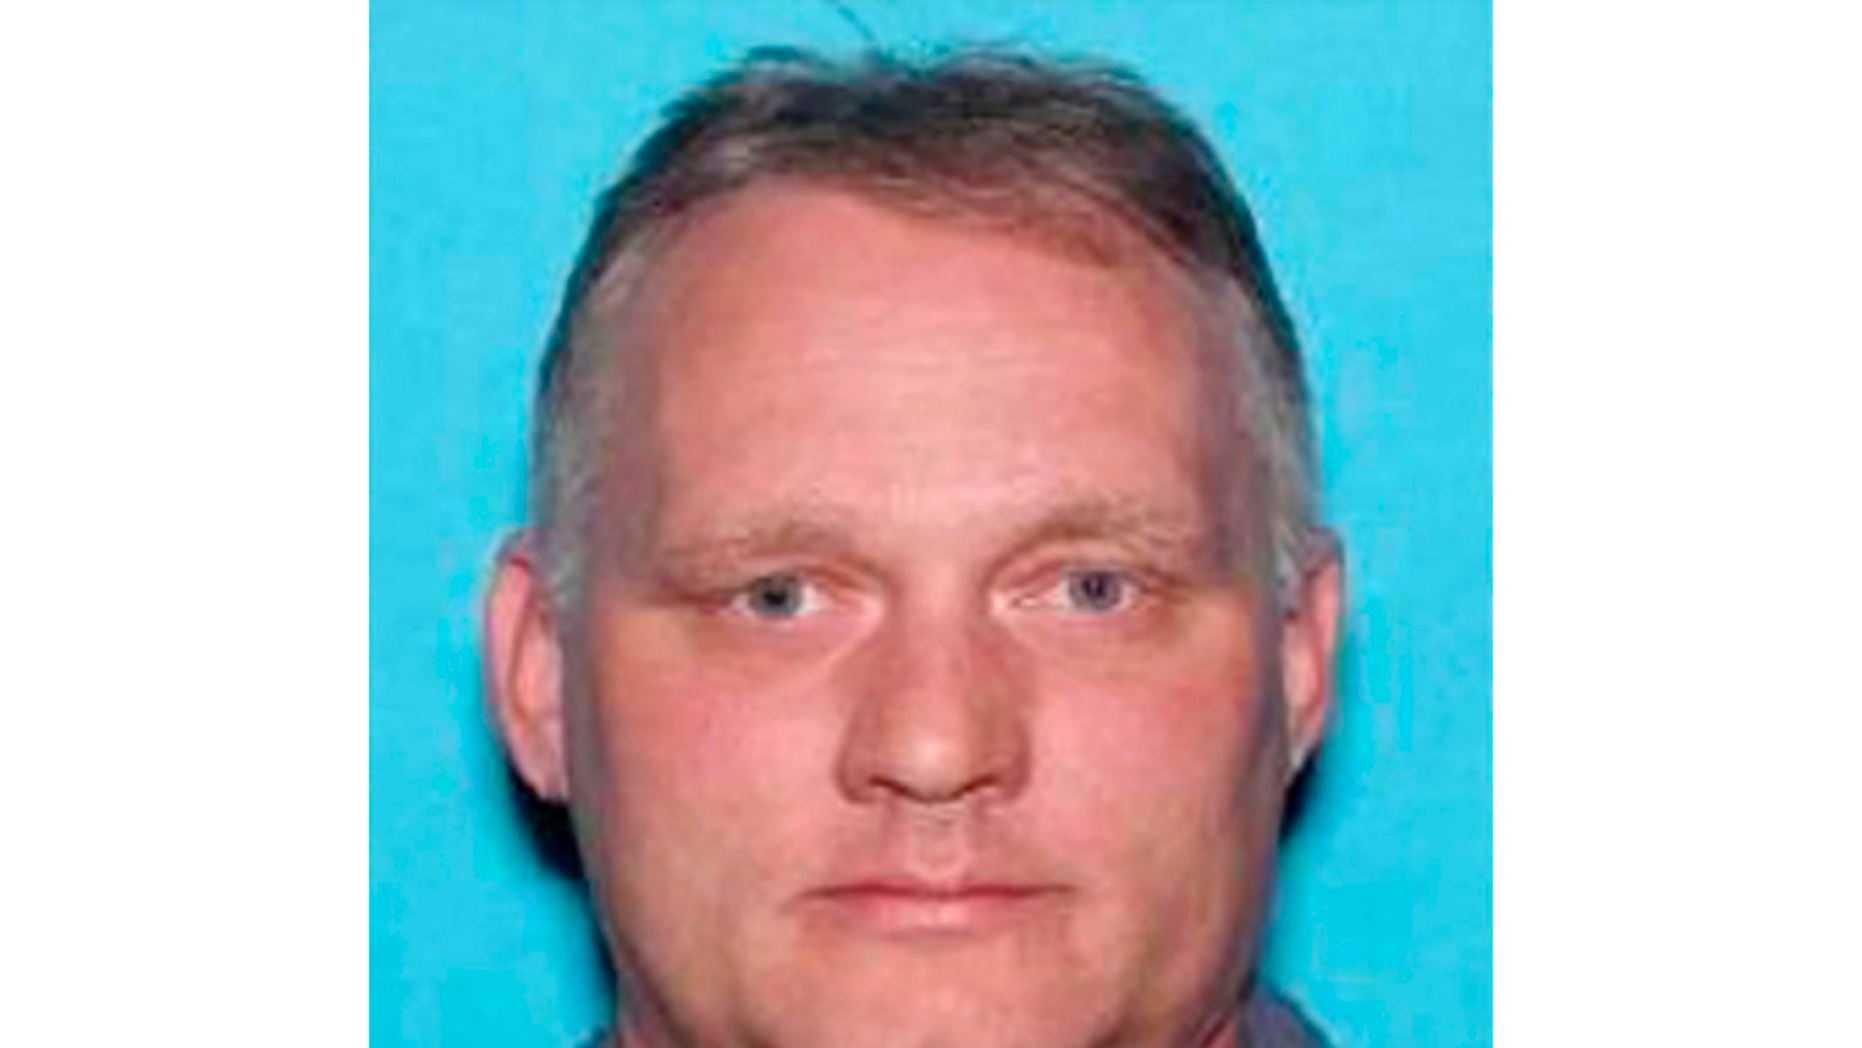 This undated Pennsylvania Department of Transportation photo shows Robert Bowers, the suspect in the deadly shooting at the Tree of Life Synagogue in Pittsburgh on Saturday, Oct. 27, 2018. (Pennsylvania Department of Transportation via AP)